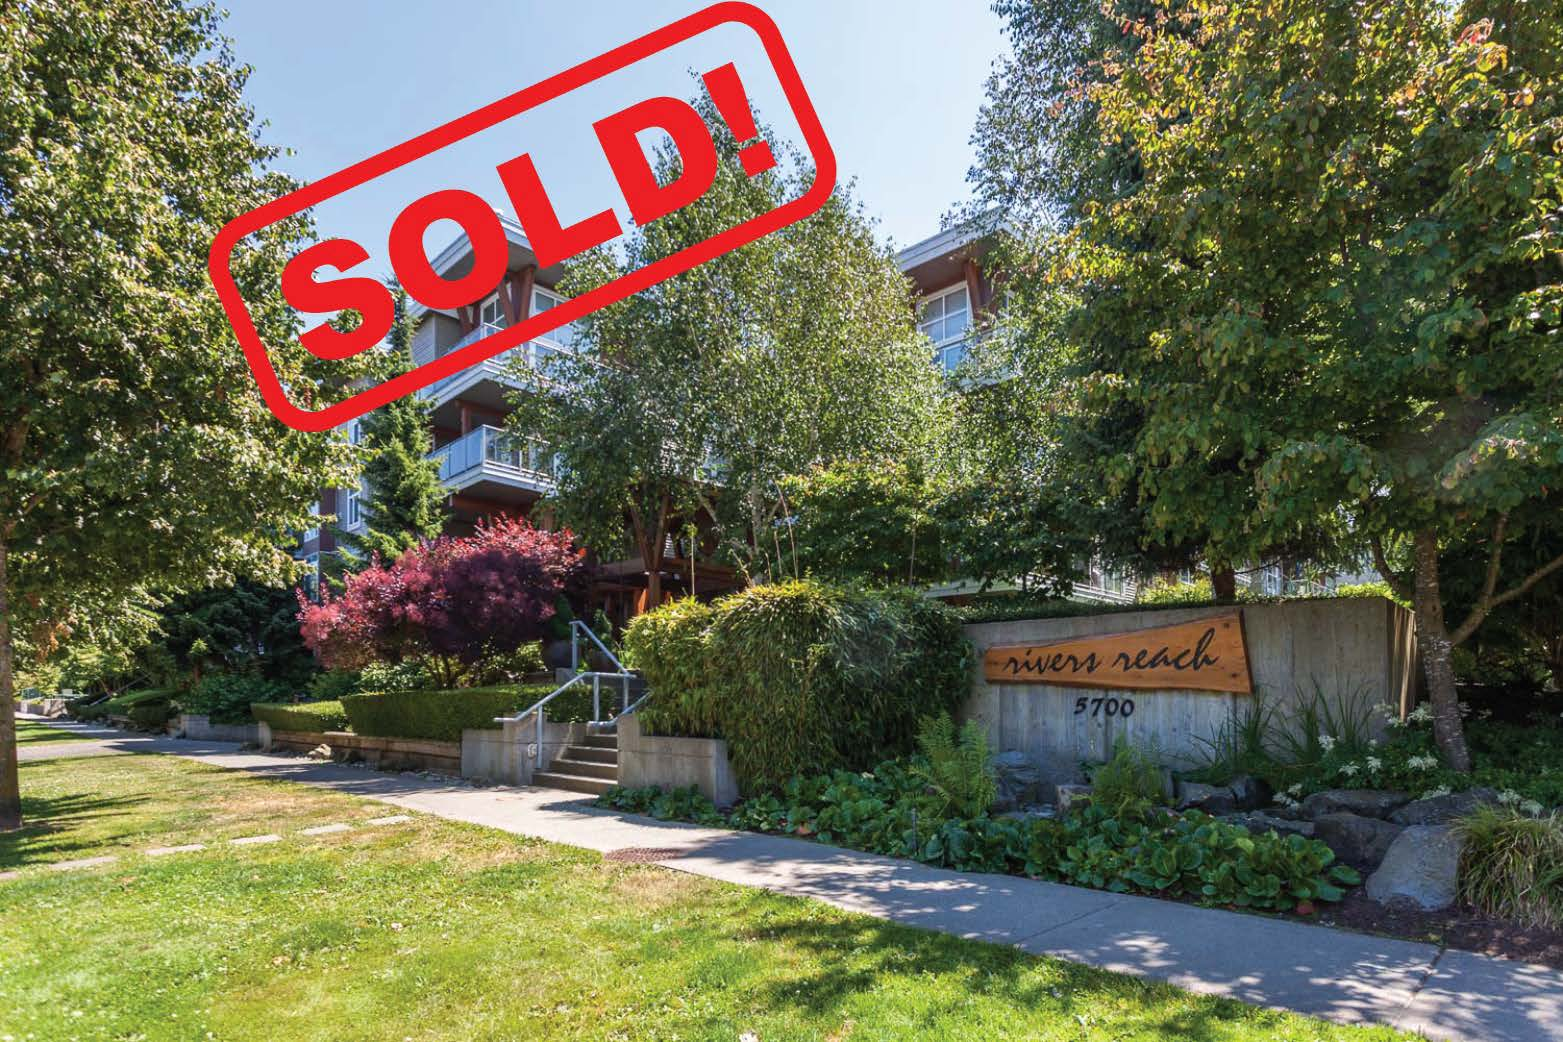 427-5700 Andrews Road   sold for: $440,000  1 Bed | 1 Bath | 700 SF